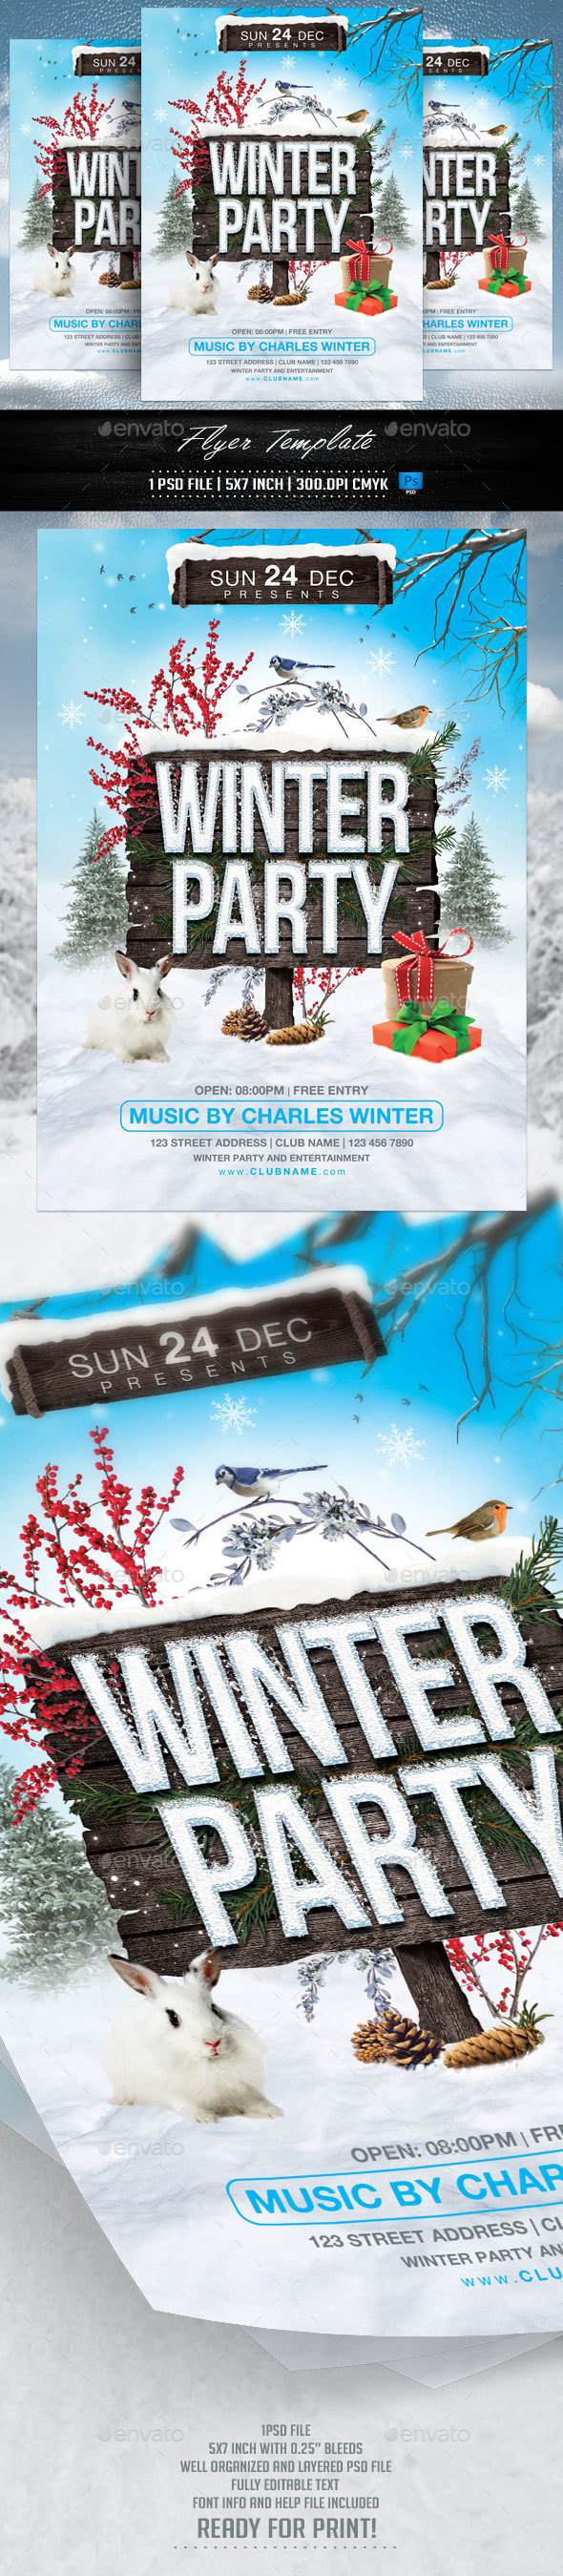 Winter Party Flyer Template v2 - Clubs & Parties Events